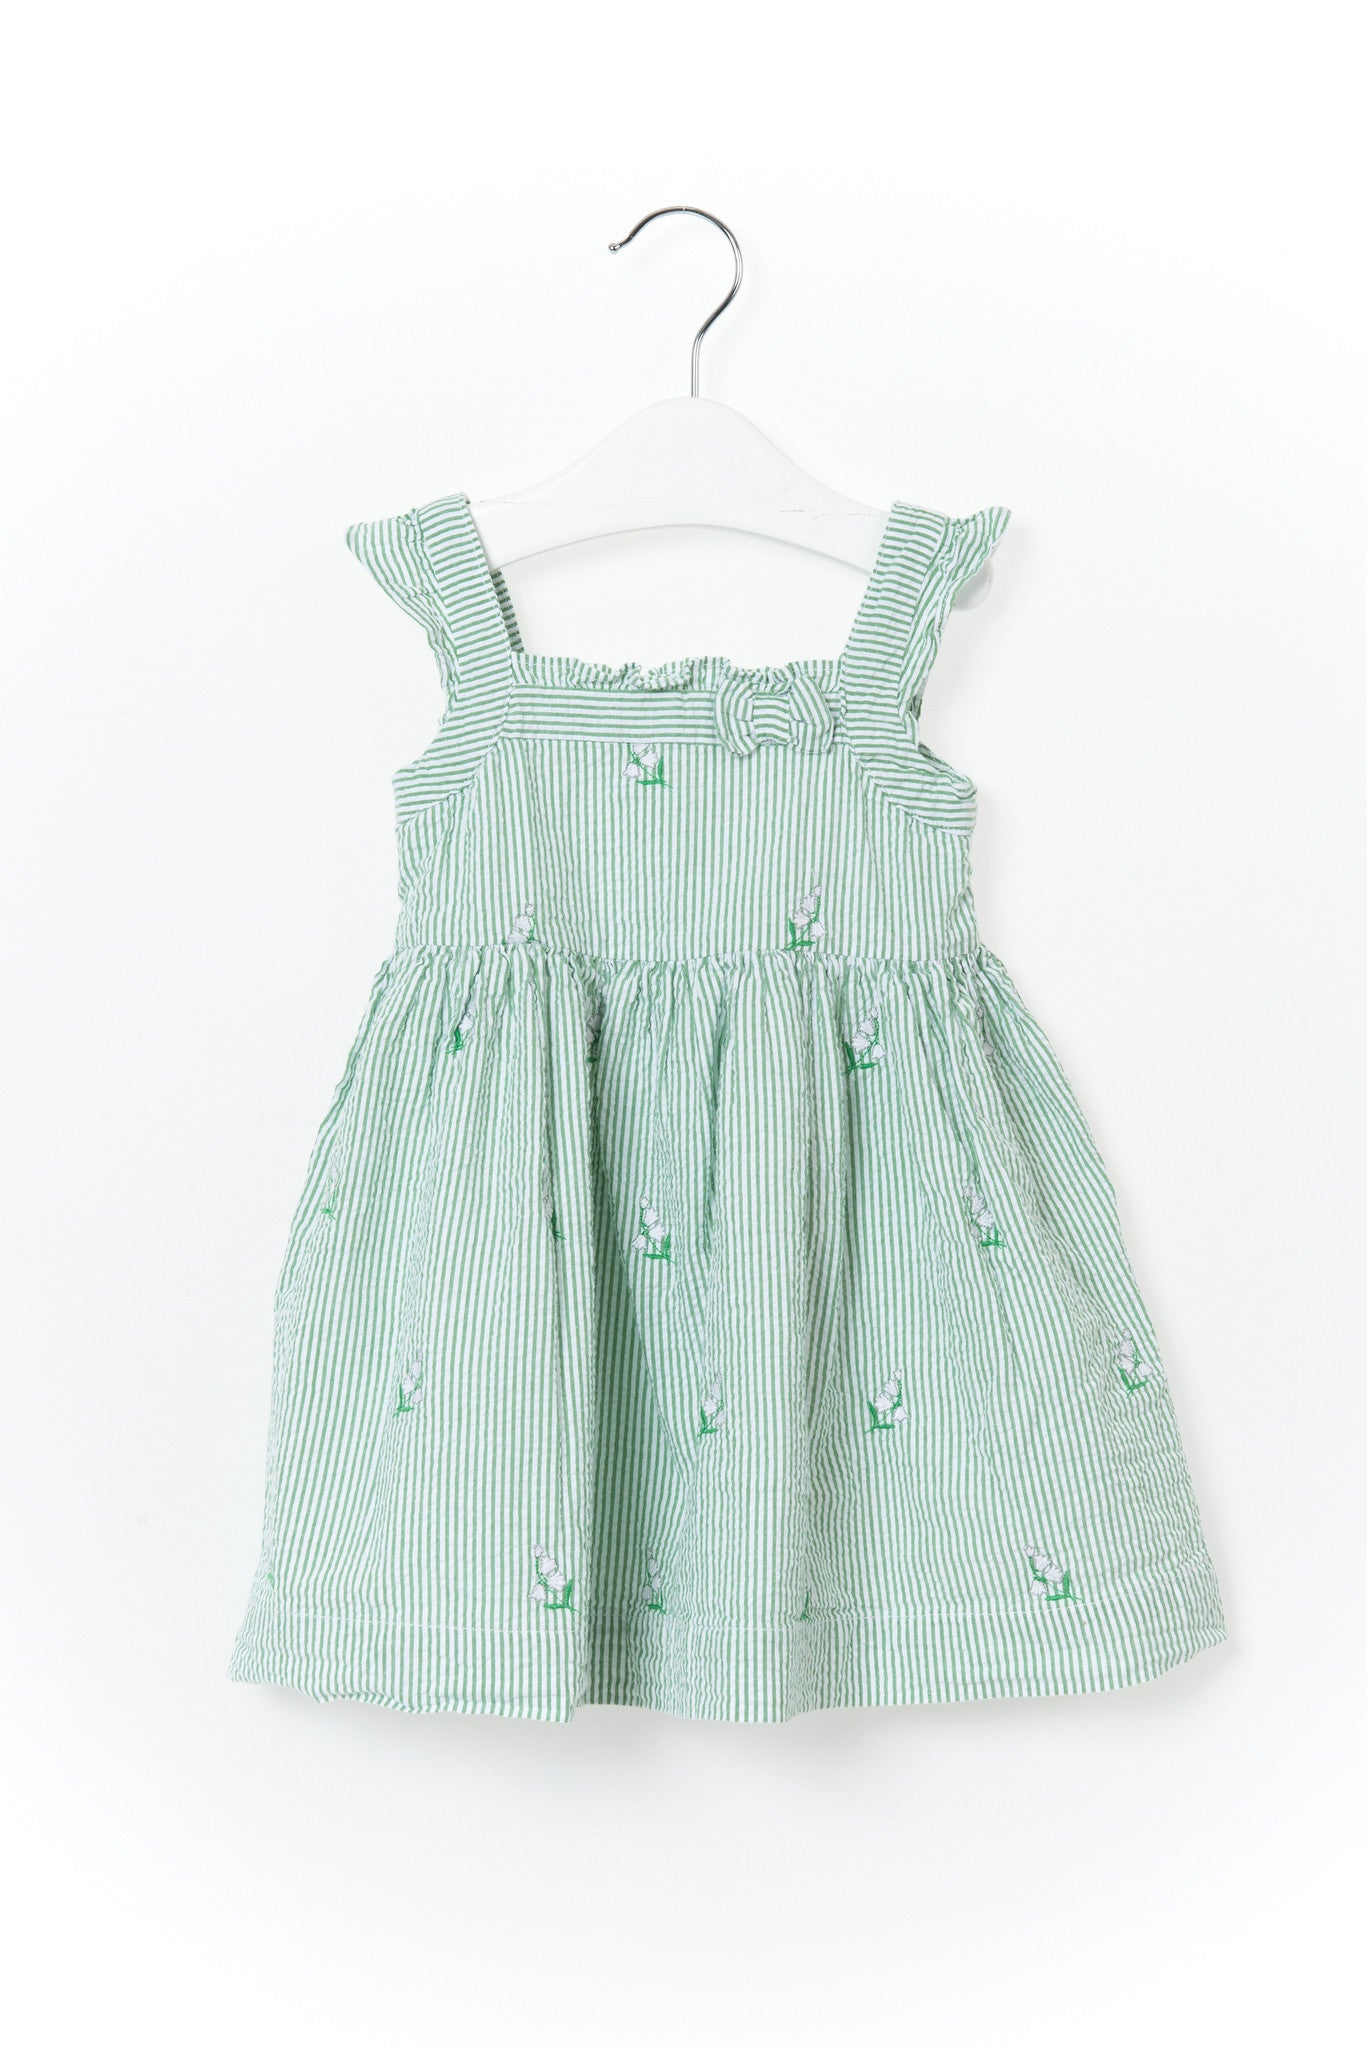 10001267 Janie & Jack Baby~Dress 6-12M at Retykle